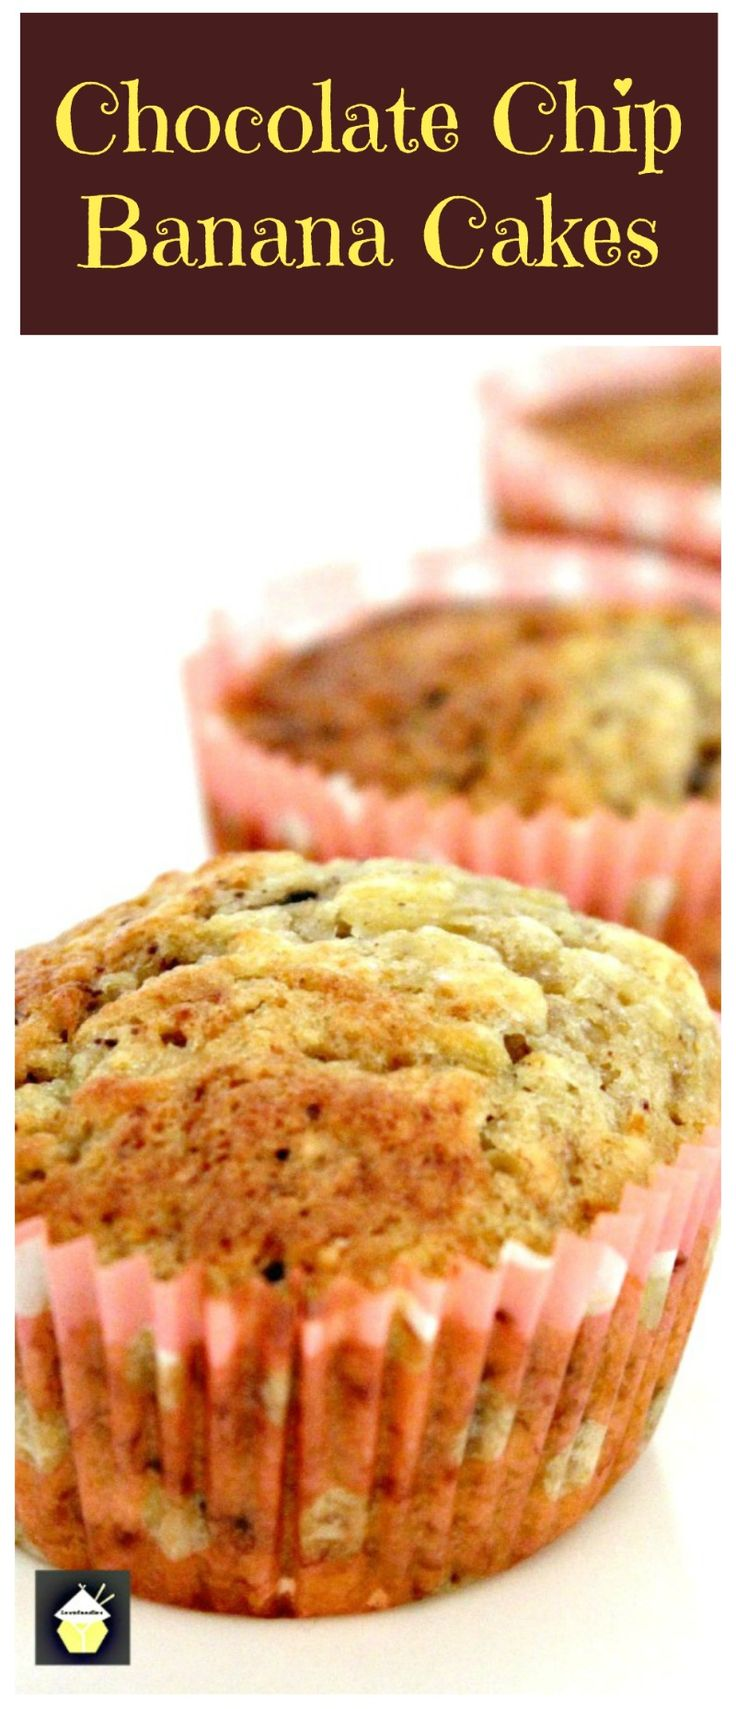 Chocolate Chip & Banana Cakes. A very easy, fuss free recipe and great if you just want to whip up a batch. Quick and no messing!